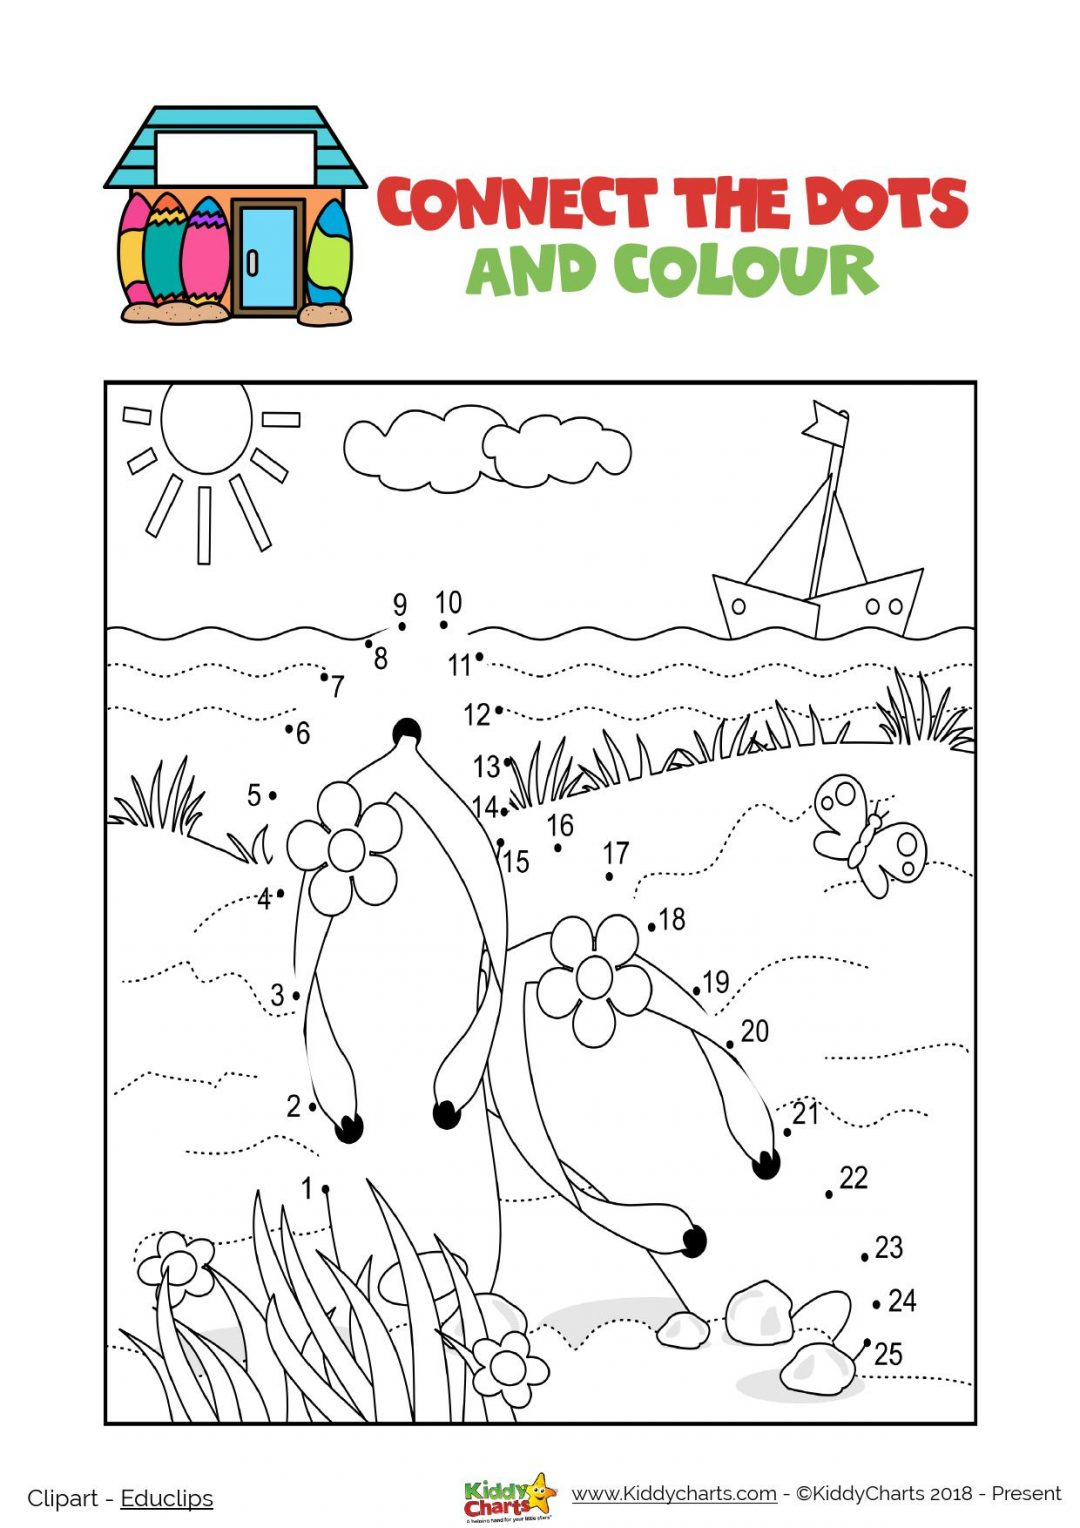 We have a summer activity dot to dot for you today; can you tell what it is? #kids #printables #summer #dottodot